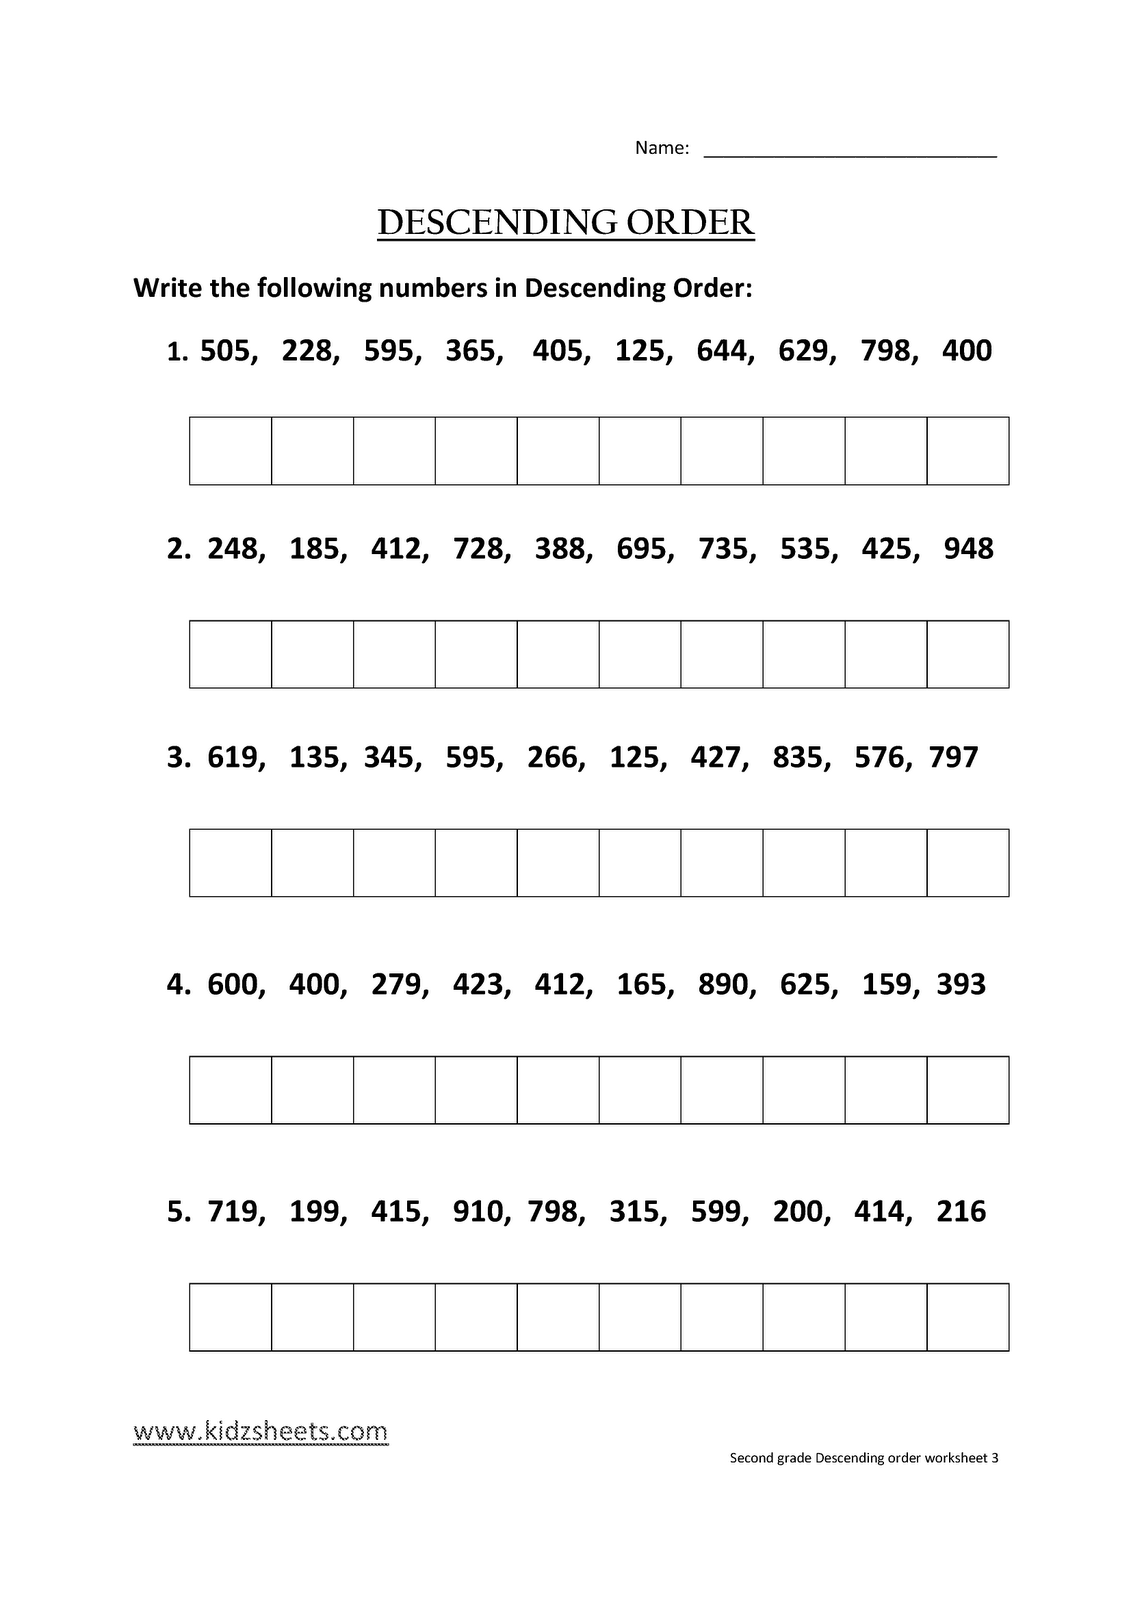 Kidz Worksheets Second Grade Descending Order Worksheet3